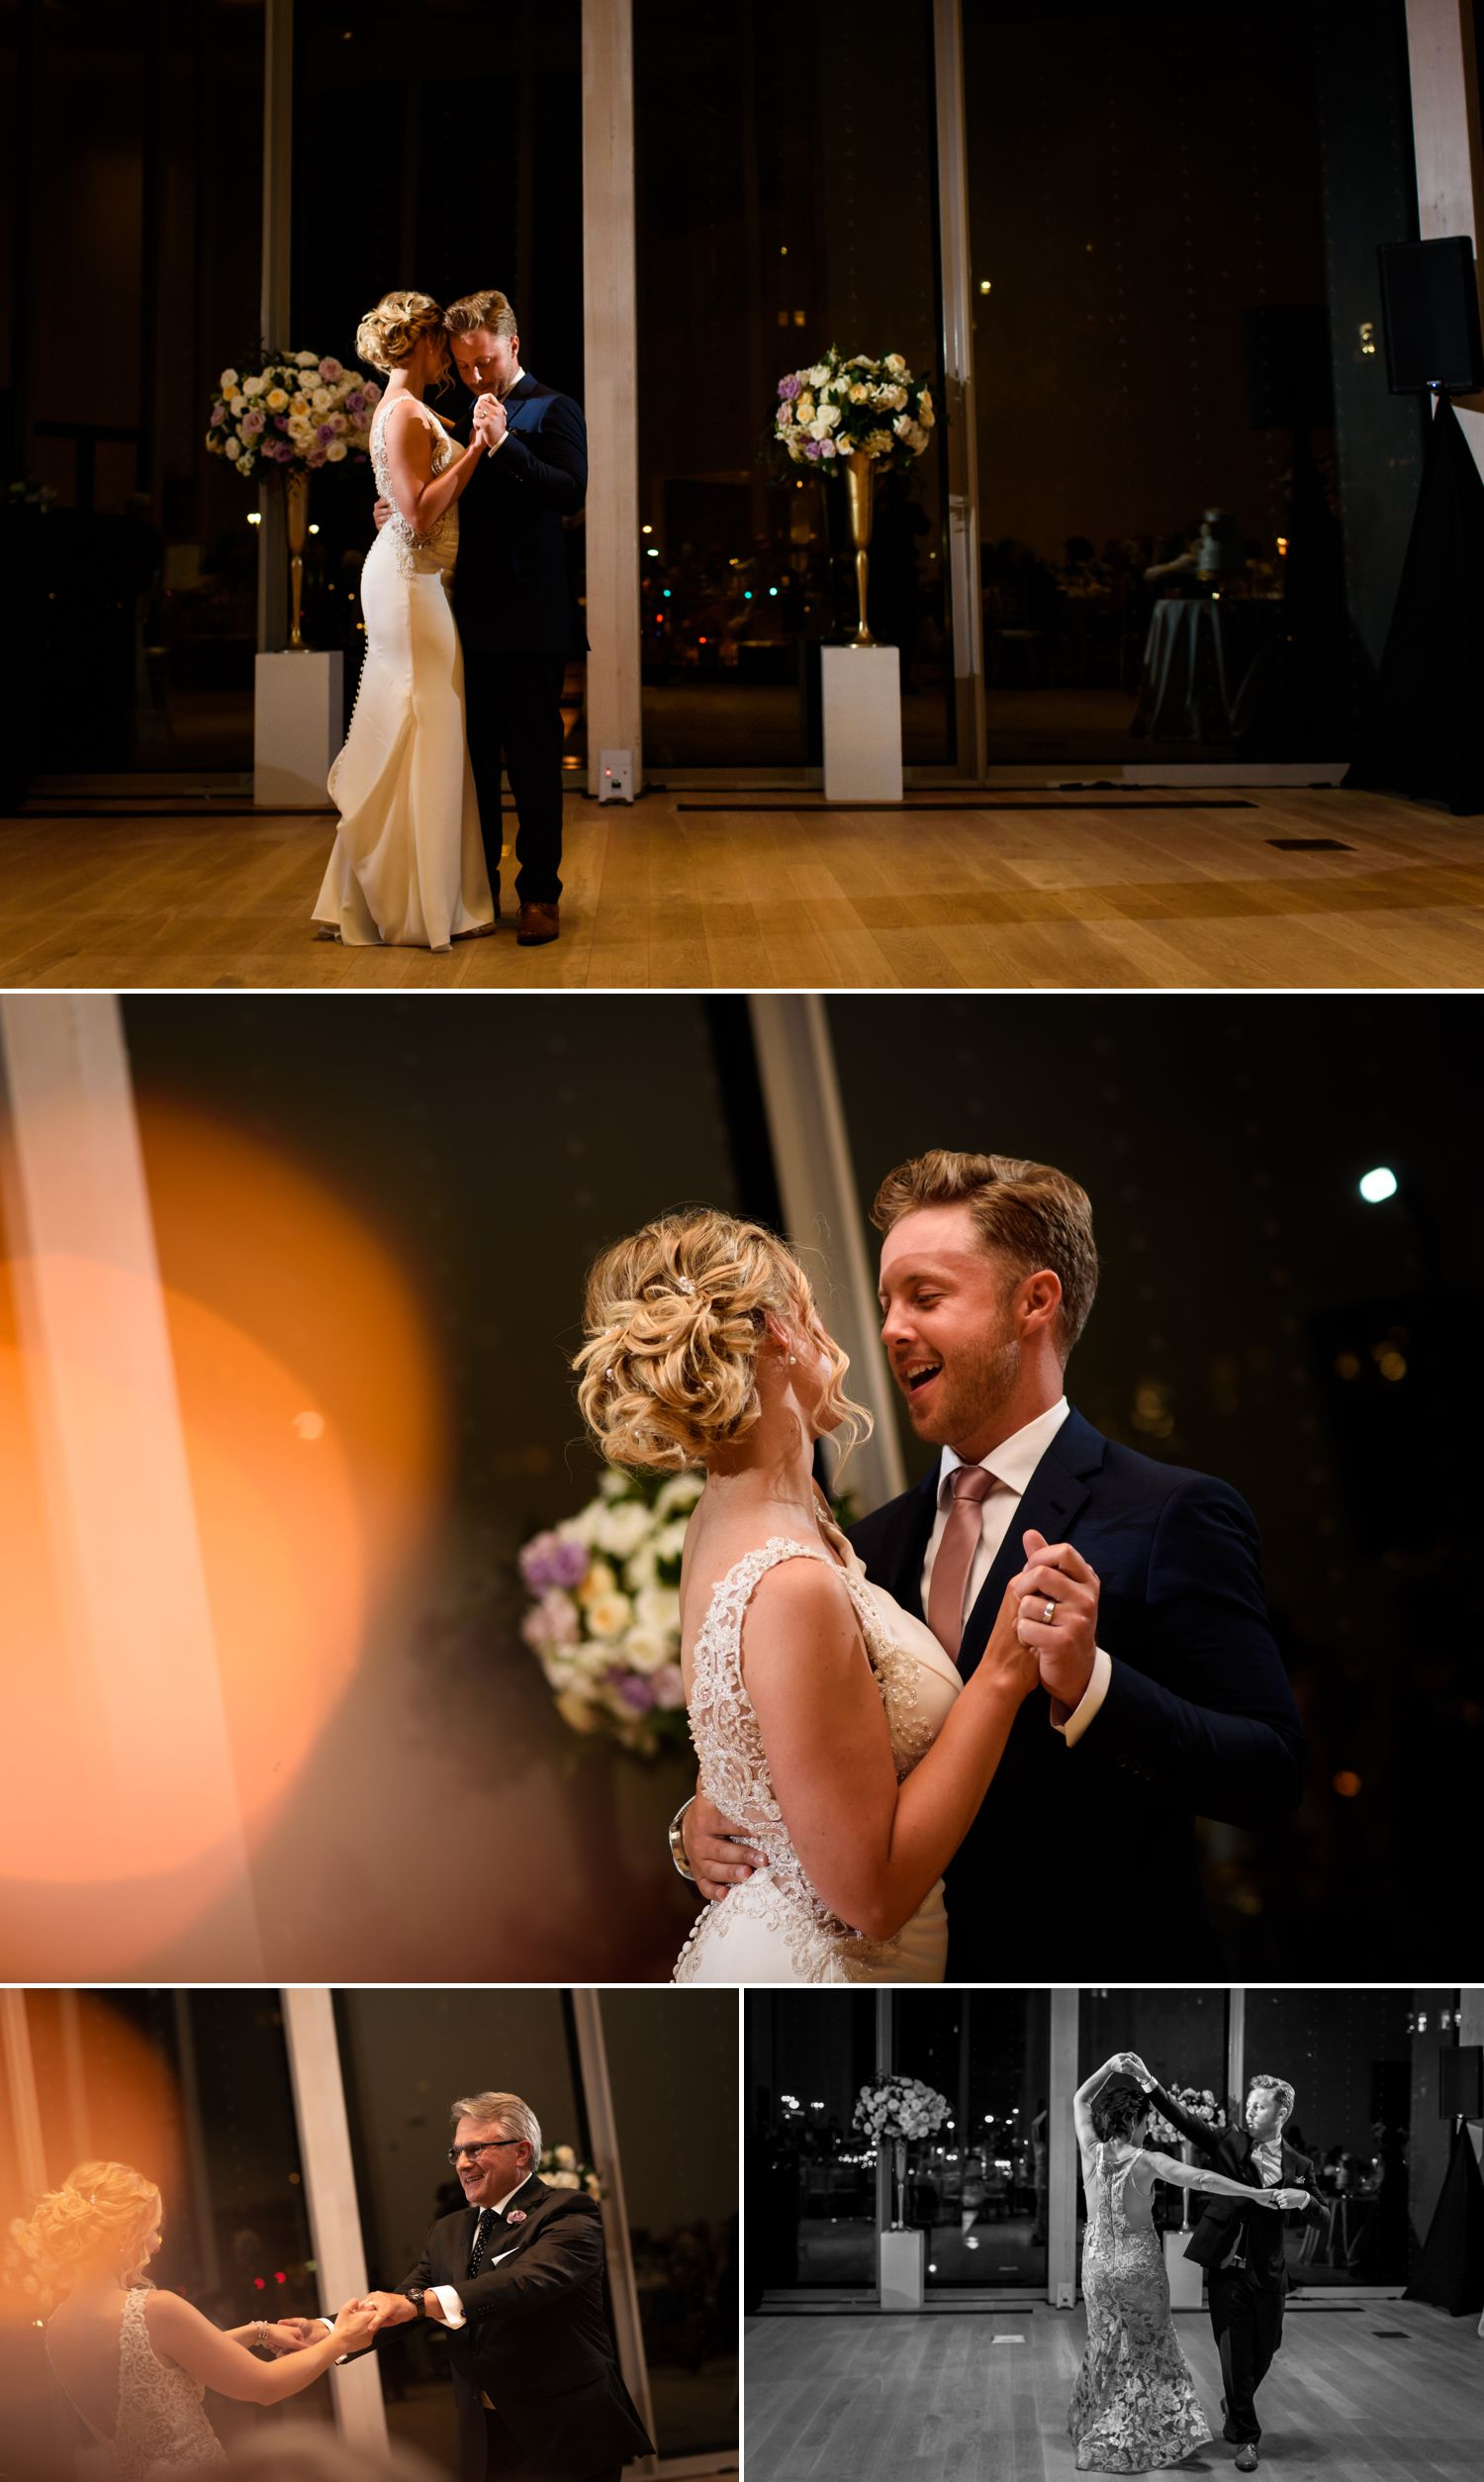 The brie and groom during their first dances at their wedding reception help at The National Arts Centre in downtown Ottawa